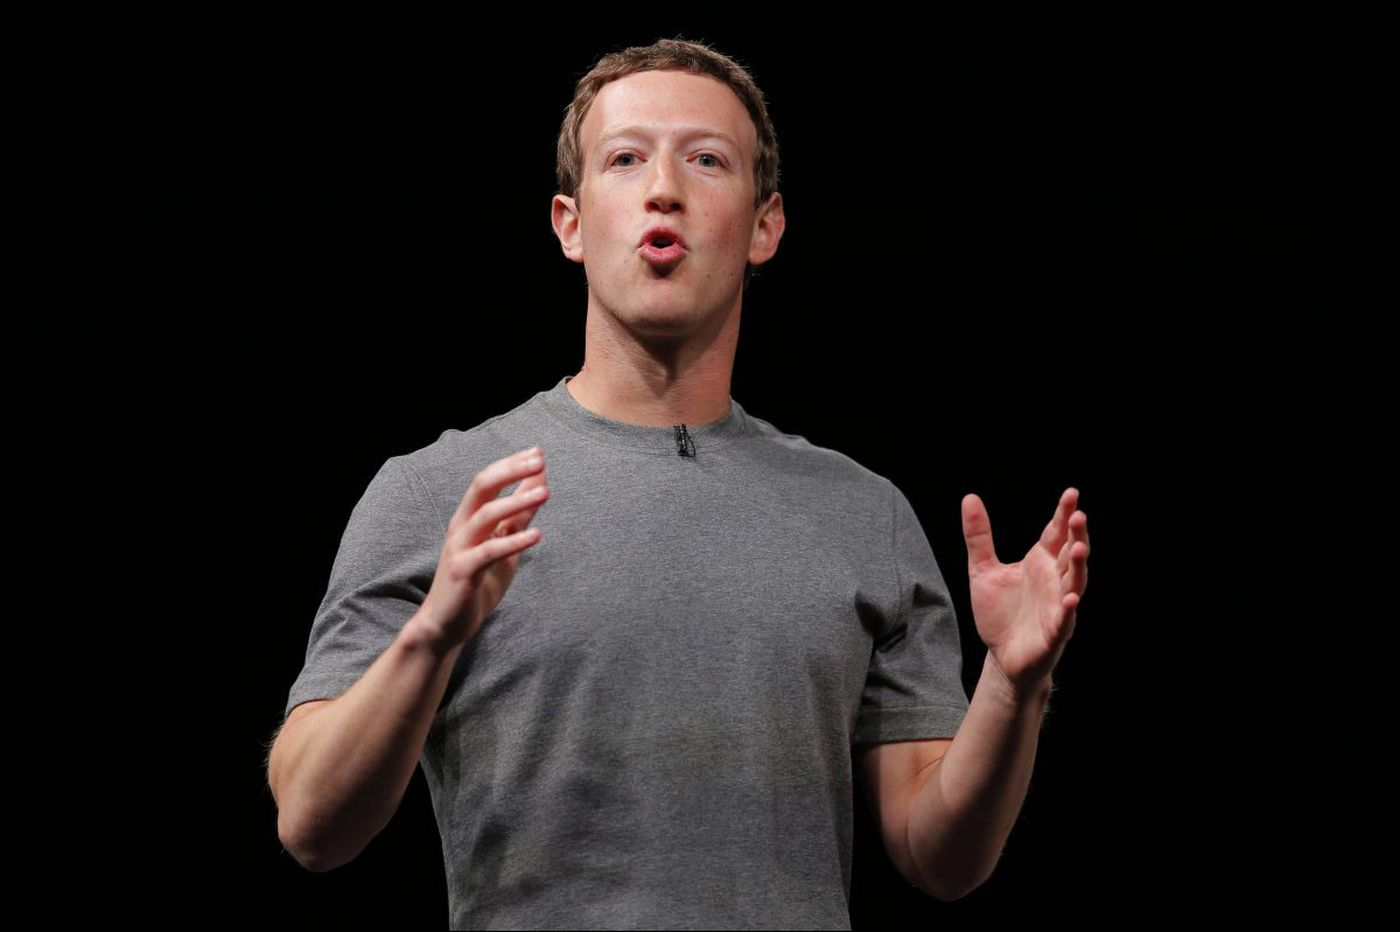 SEPTA, other investors force Zuckerberg to abandon plan for nonvoting shares